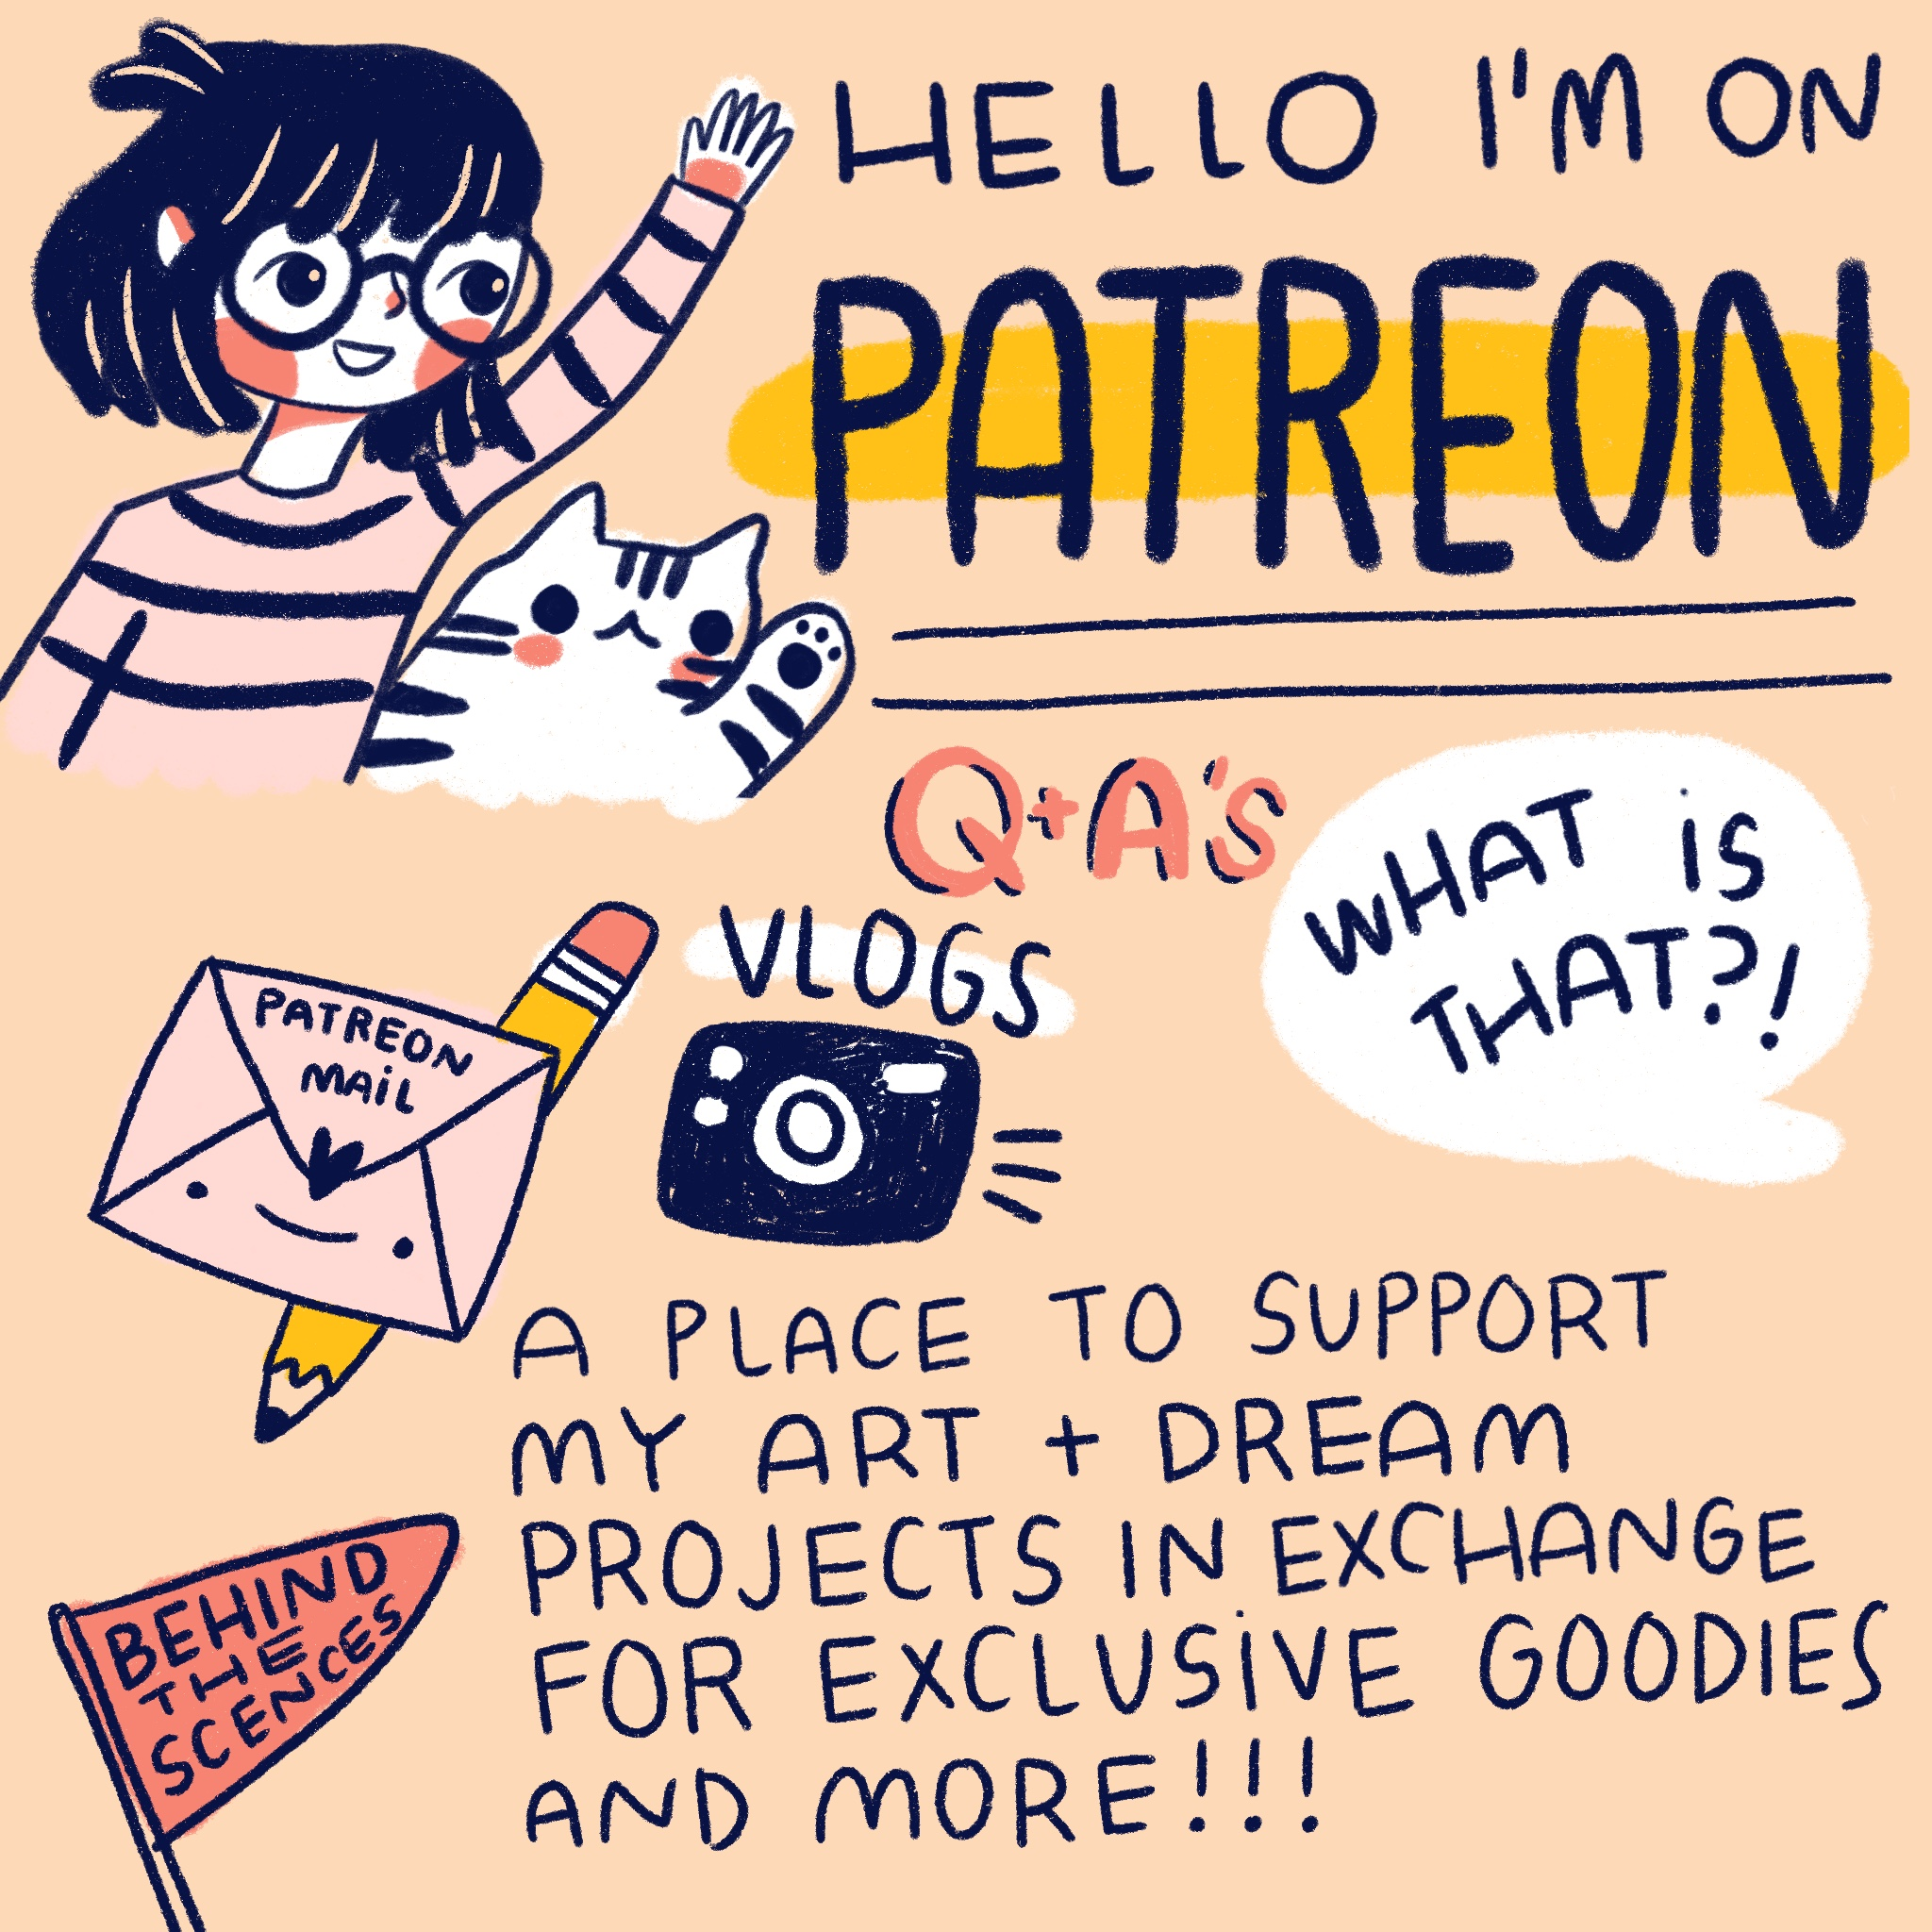 Patreon_ABOUT.jpg